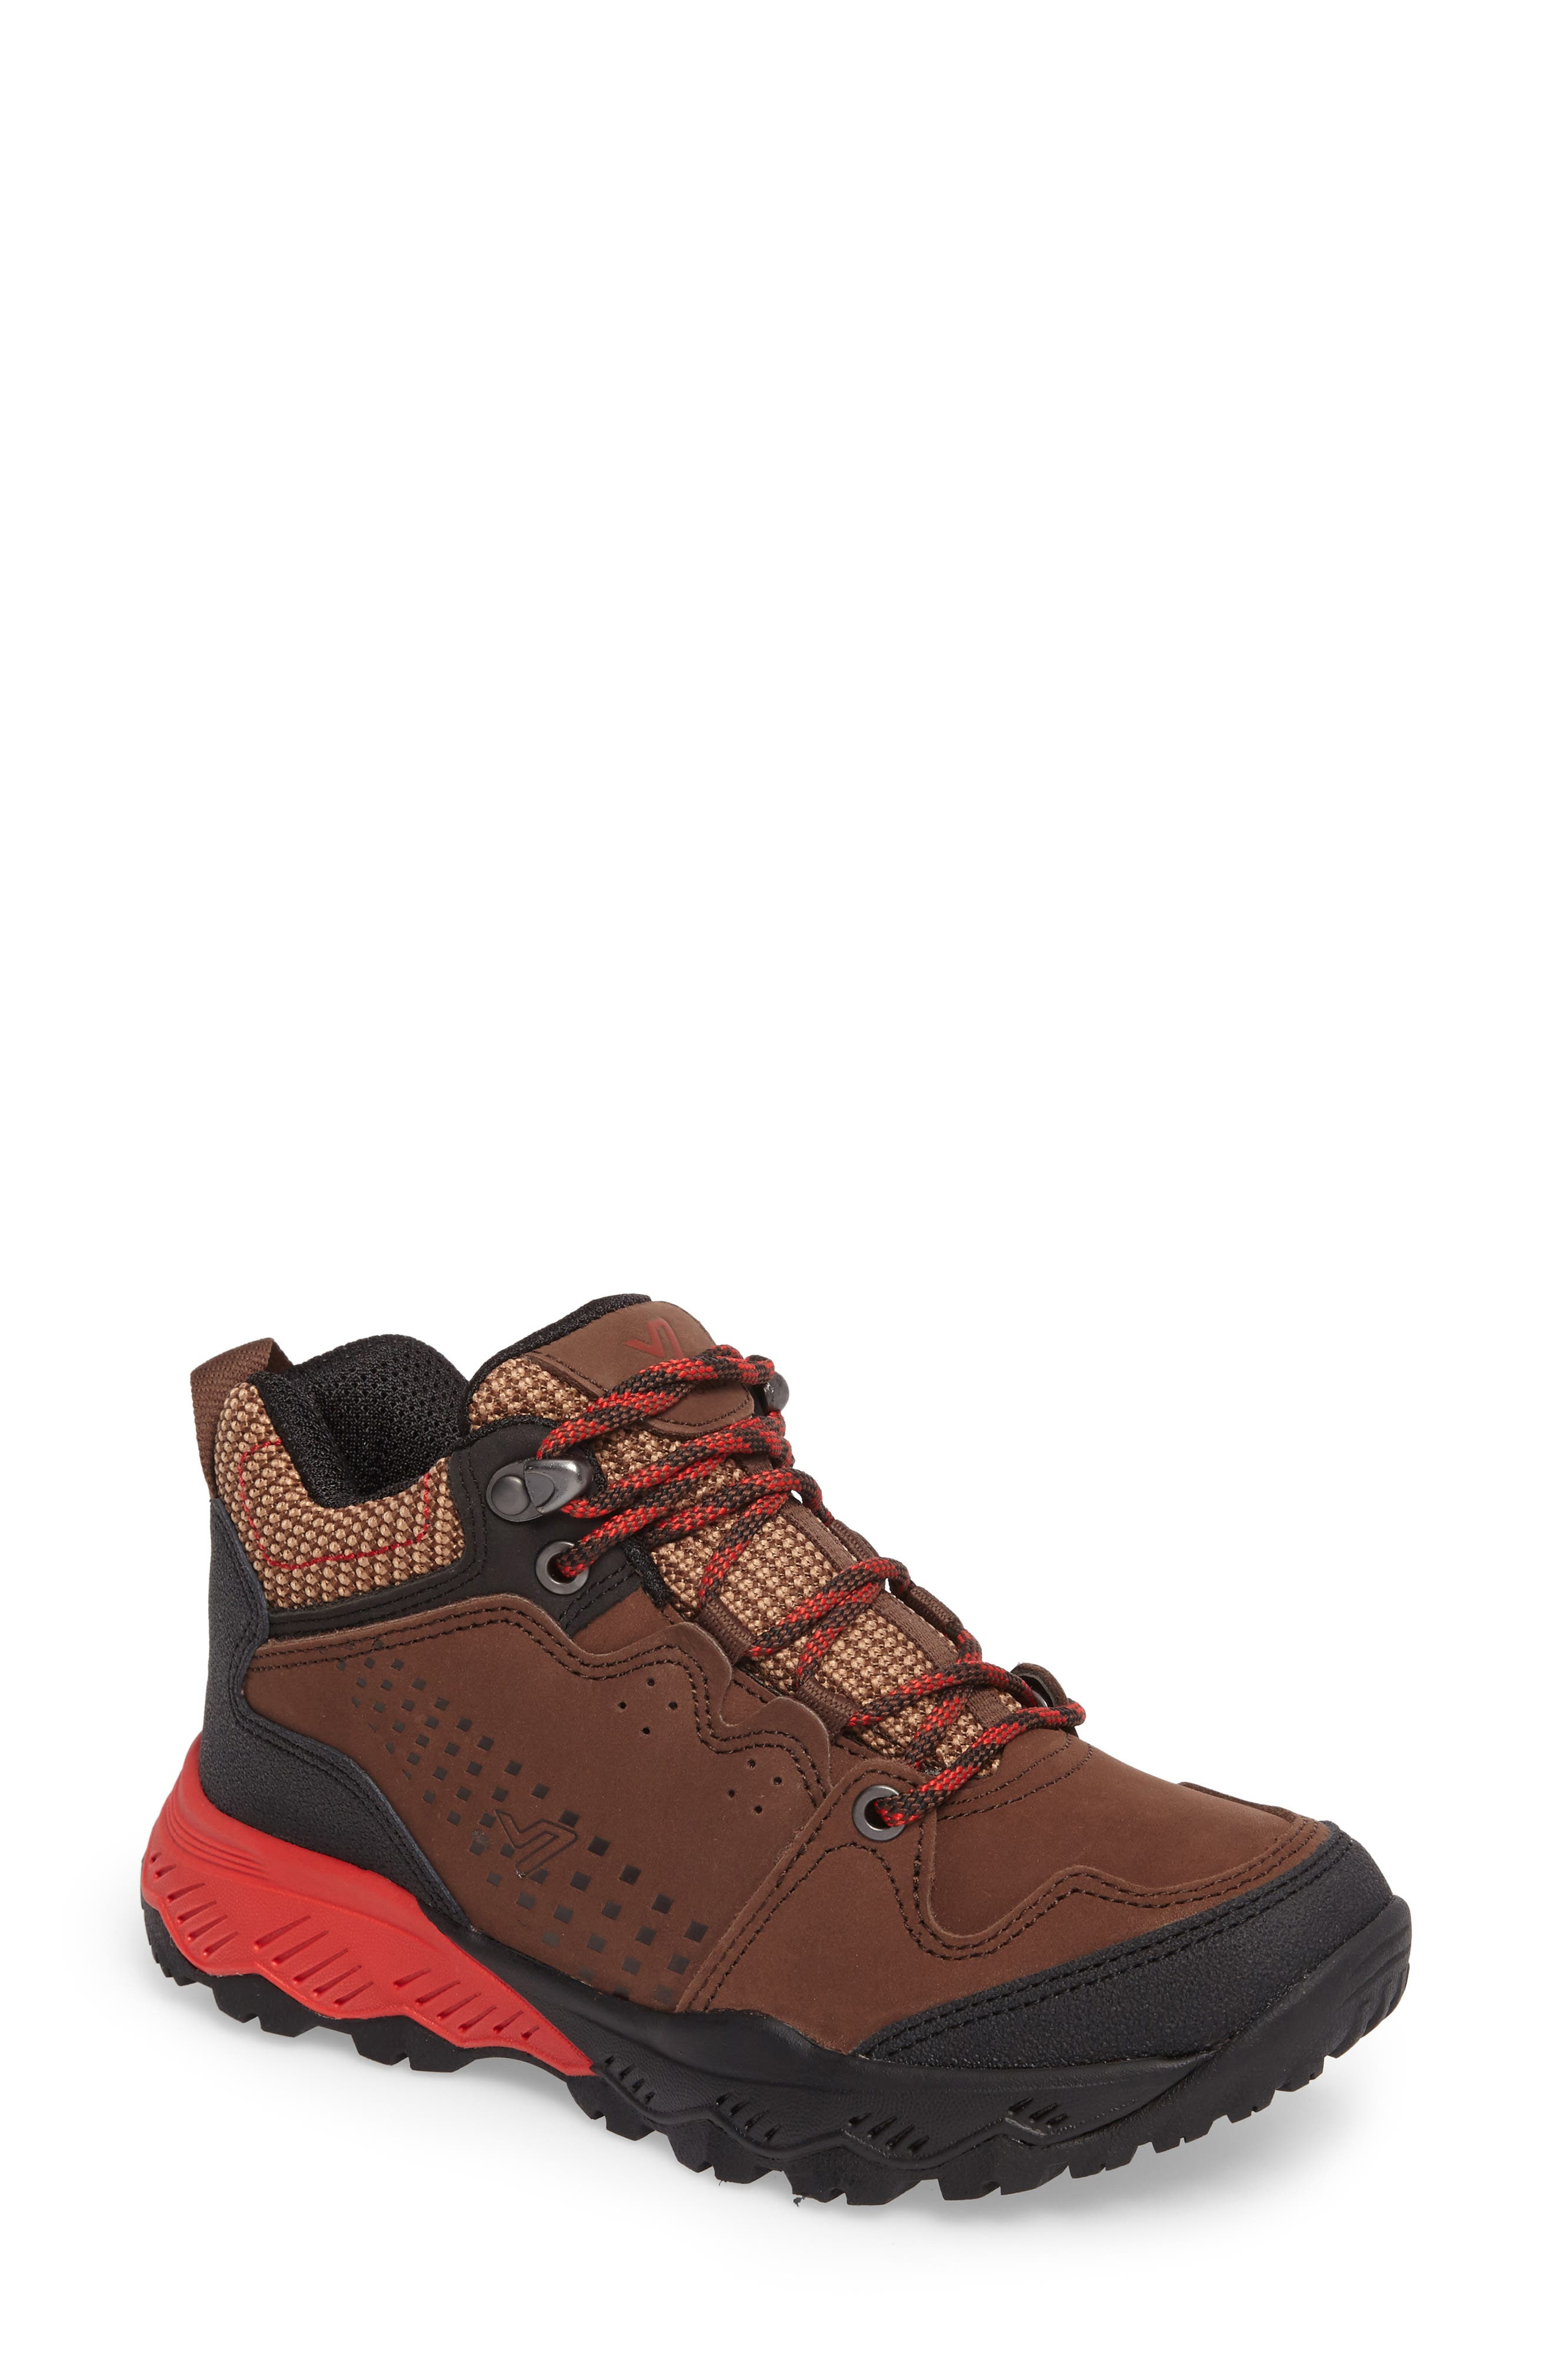 Everett Hiking Shoe,                         Main,                         color, Brown / Red Leather